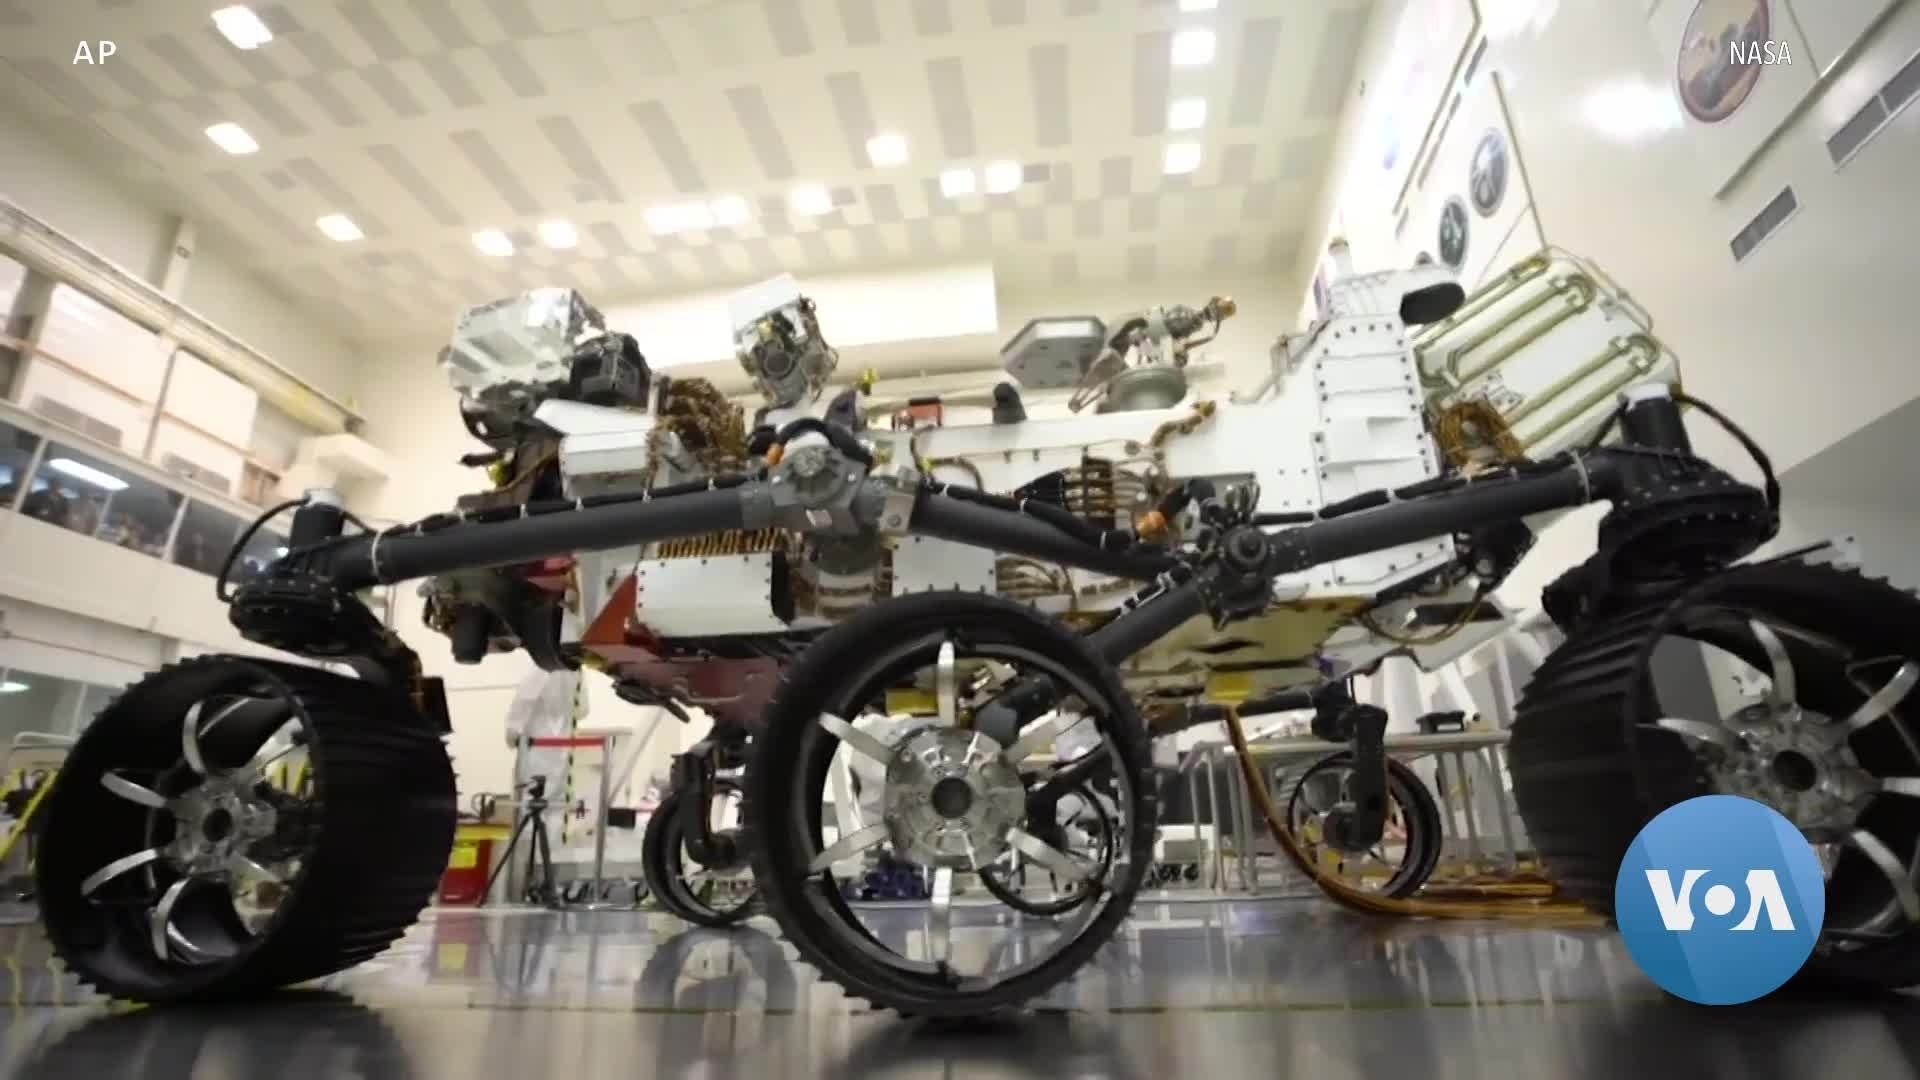 NASA Rover Continues Quest to Find Evidence of Life on Mars